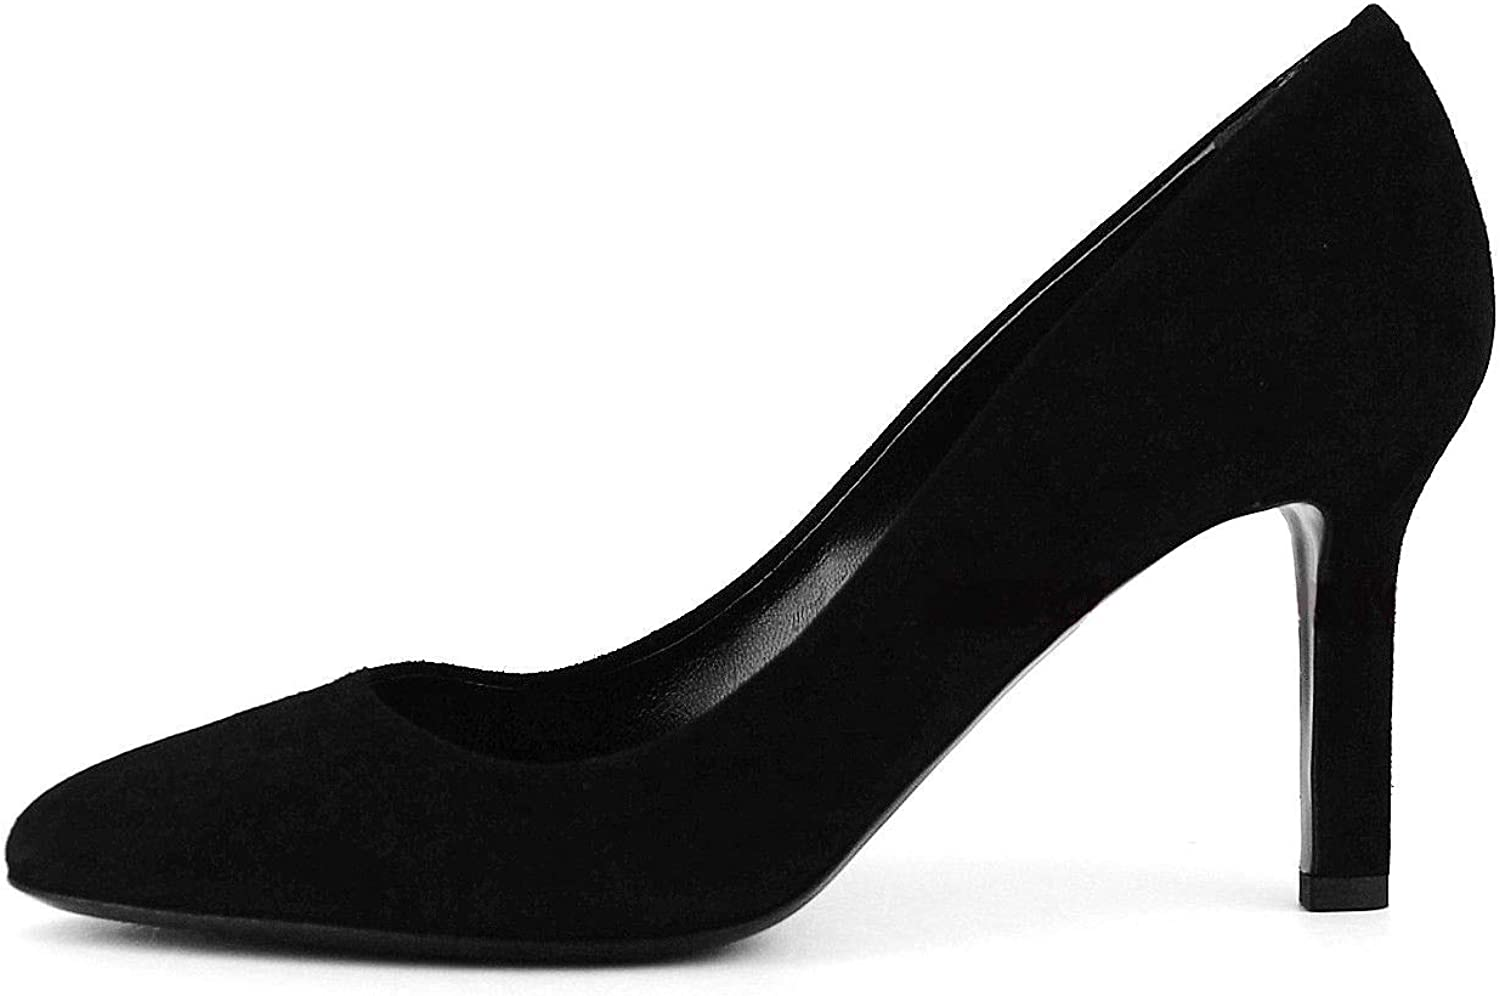 Tamara Mellon shoes Designer Jimmy Choo Black Suede Leather 3  Heel SZ 8-38 New